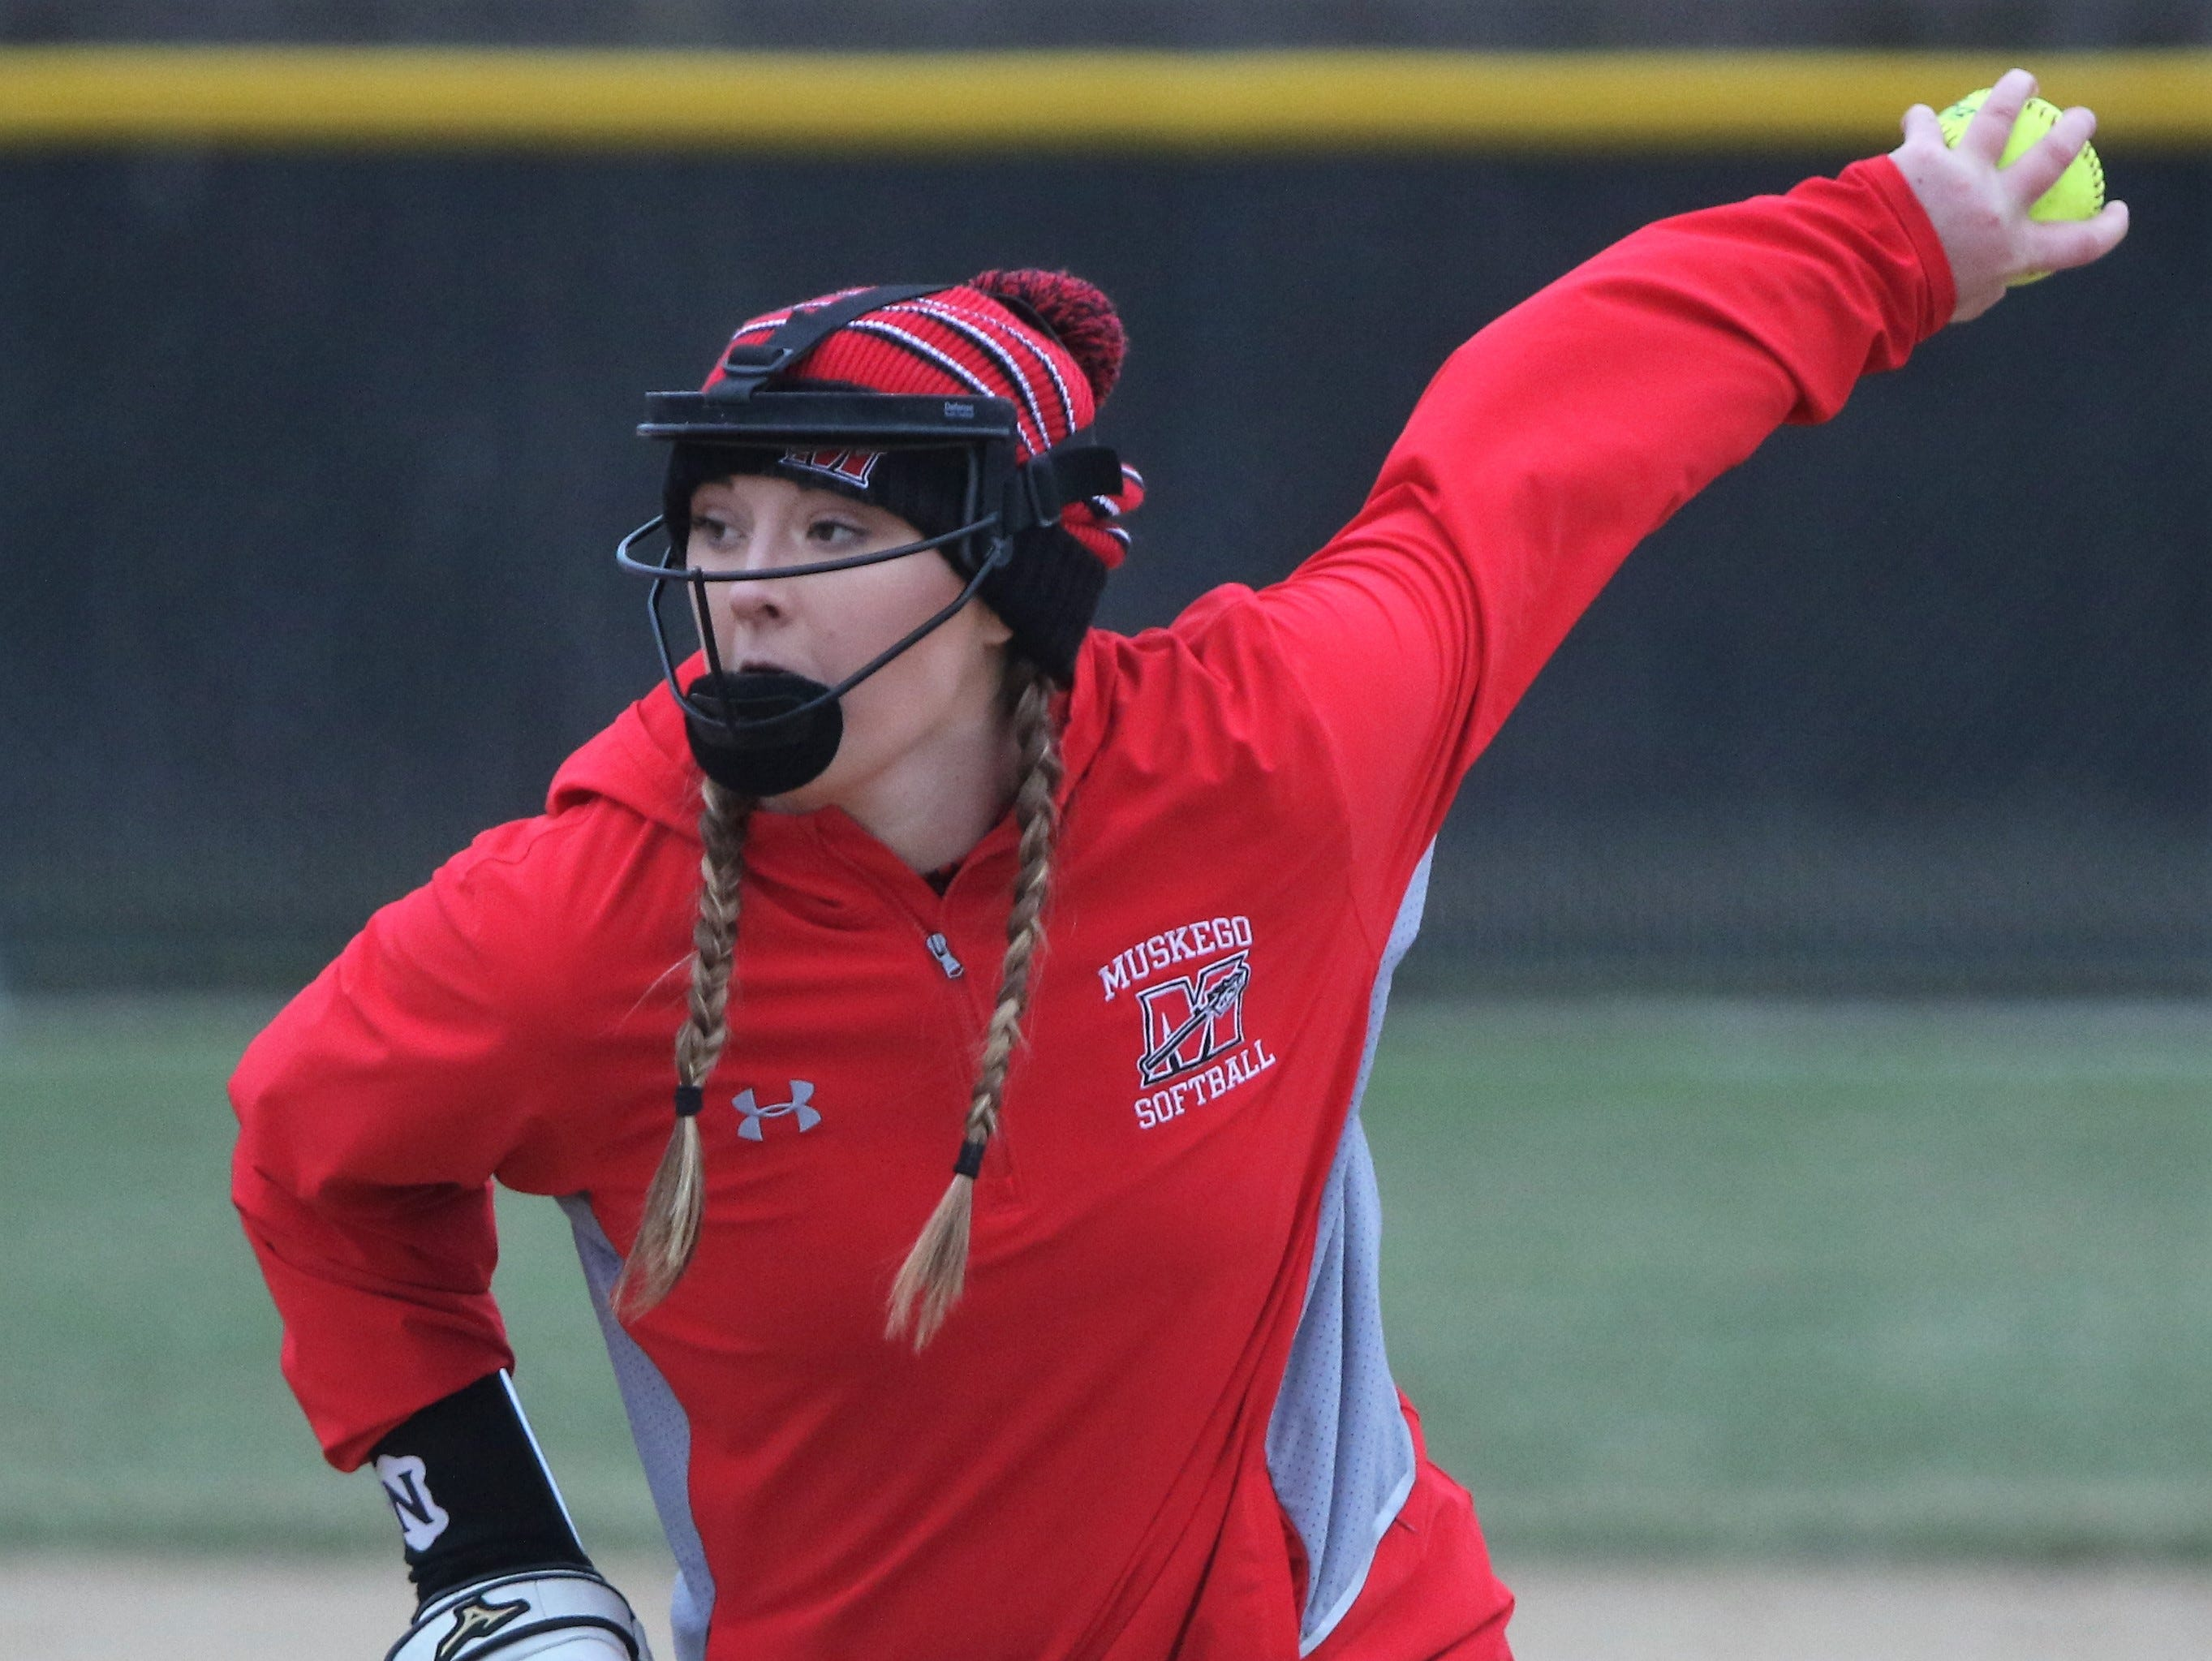 Muskego pitcher Jordan Caby winds up to deliver a pitch against Waukesha North on April 12, 2019.